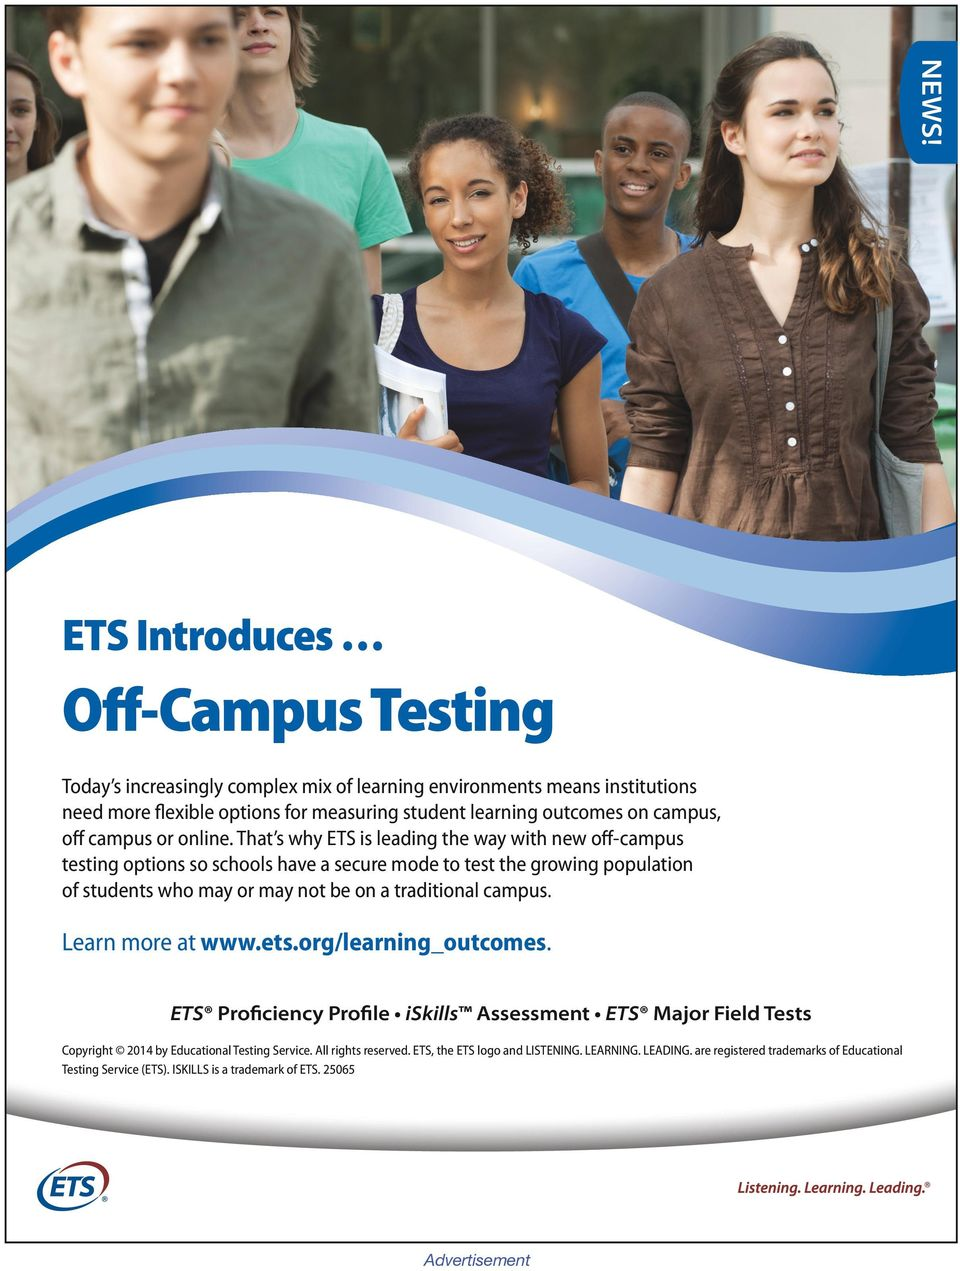 That s why ETS is leading the way with new off-campus testing options so schools have a secure mode to test the growing population of students who may or may not be on a traditional